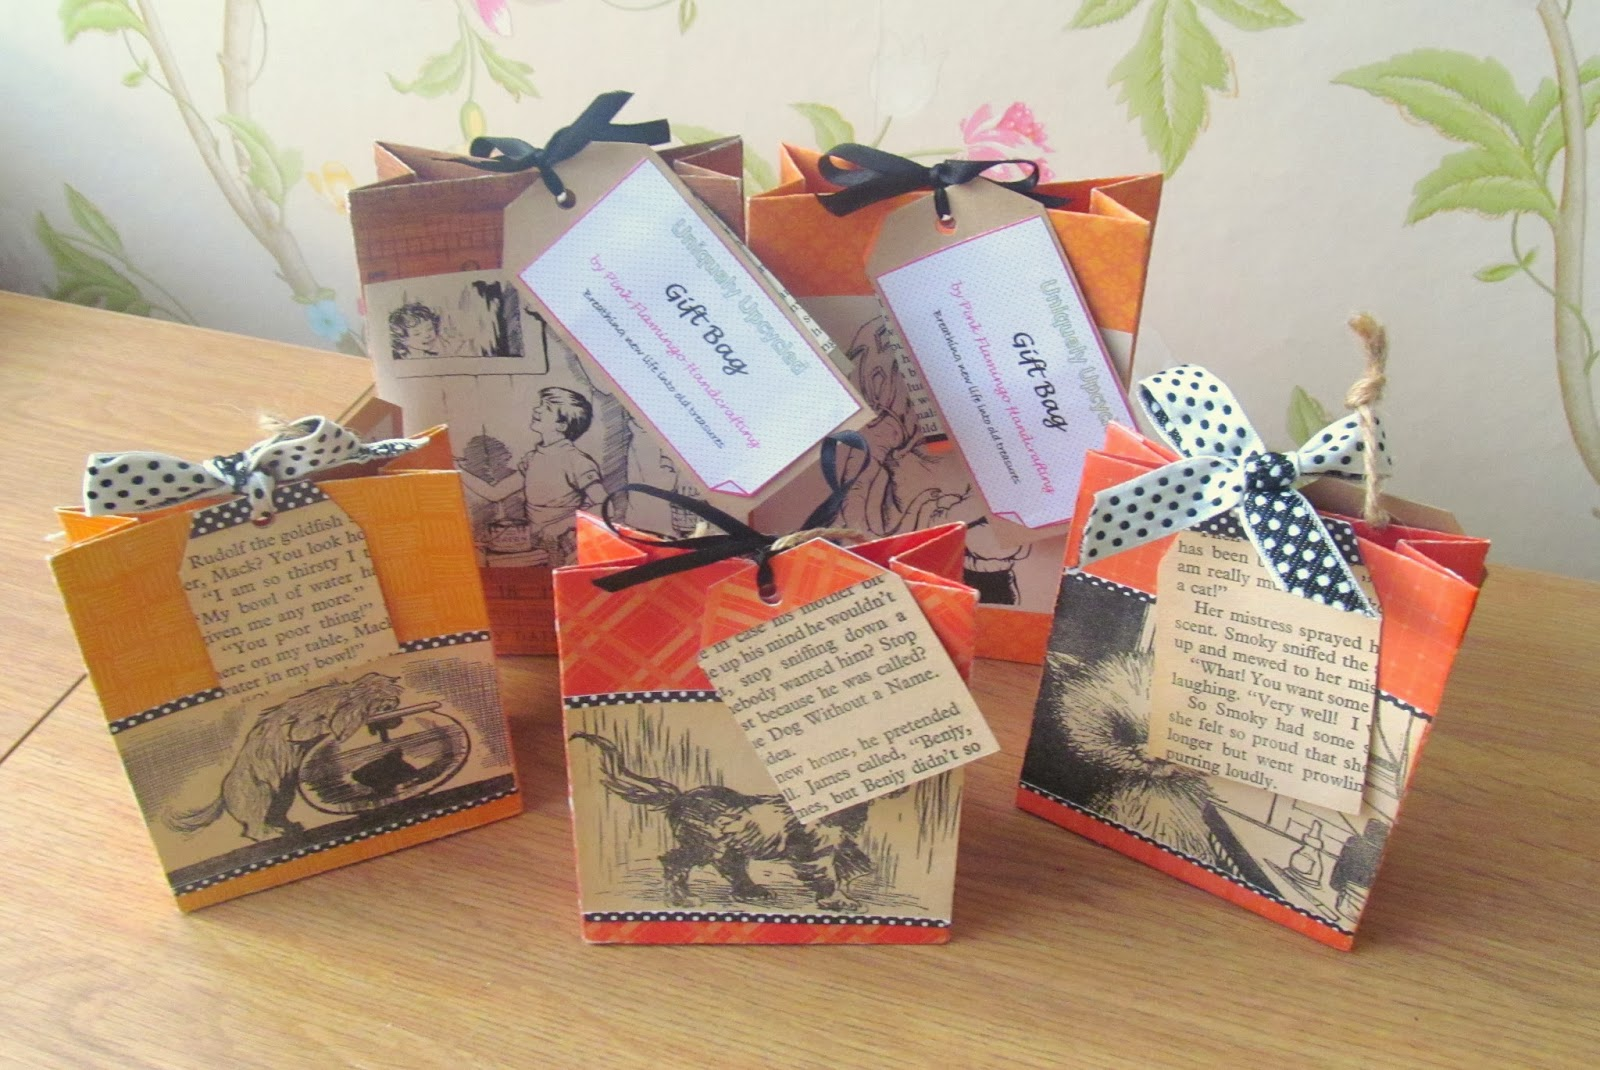 Handmade gift bags by Pink Flamingo Handcrafting